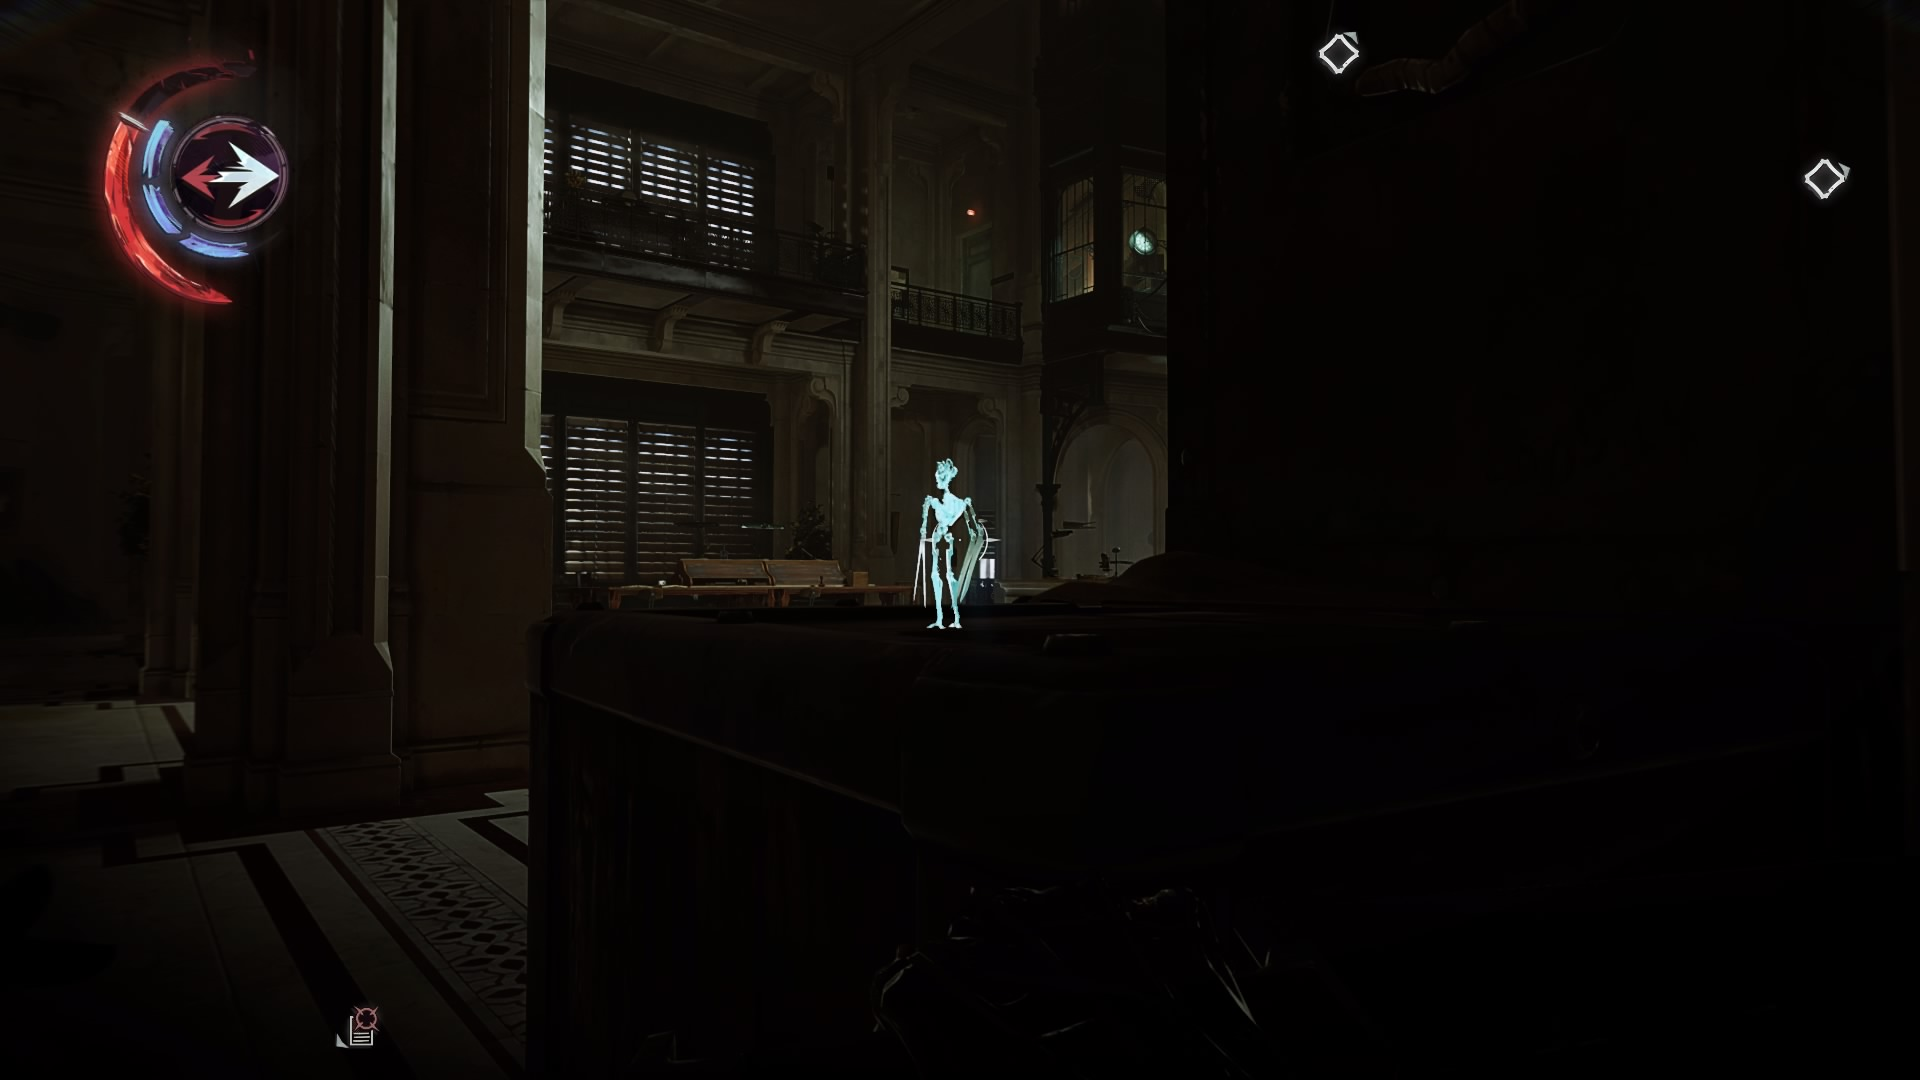 Dishonored-Lamortdel-Outsider PS4 Test 010